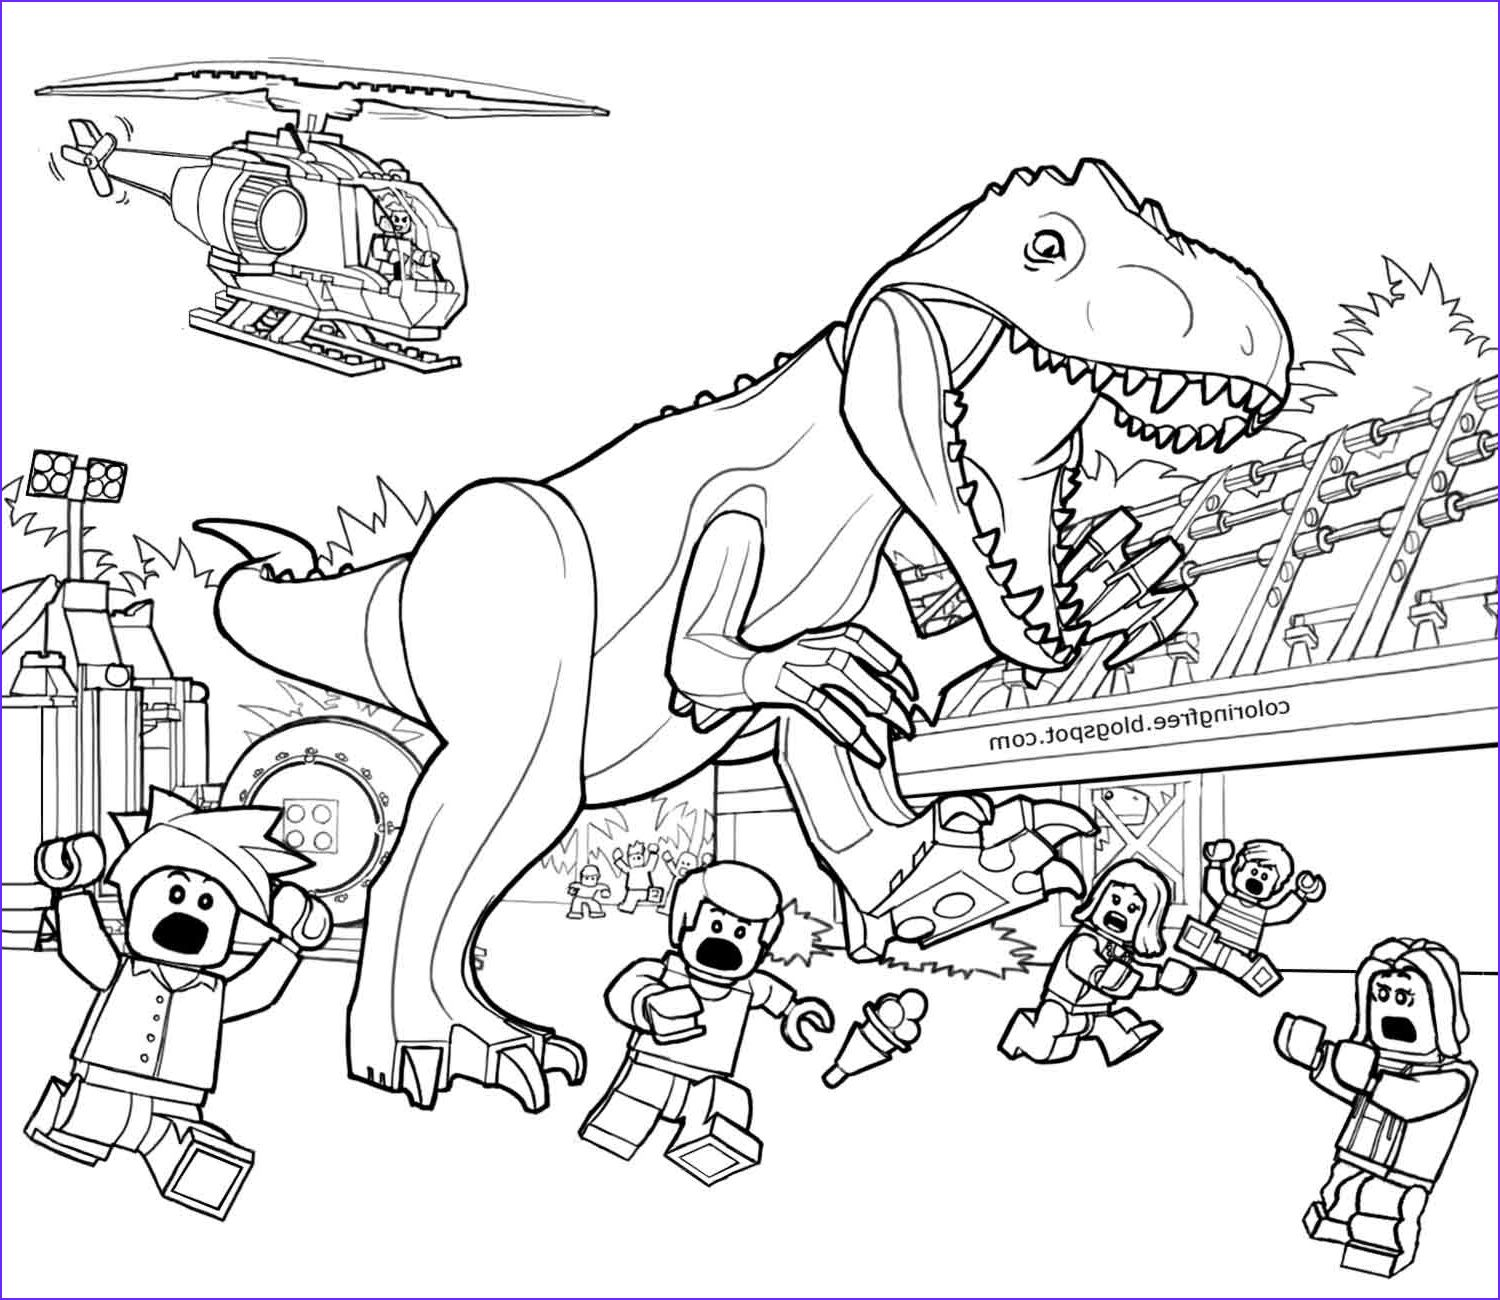 45 Cool Images Of Jurassic World Coloring Pages Dinosaur Coloring Pages Cartoon Coloring Pages Coloring Pages